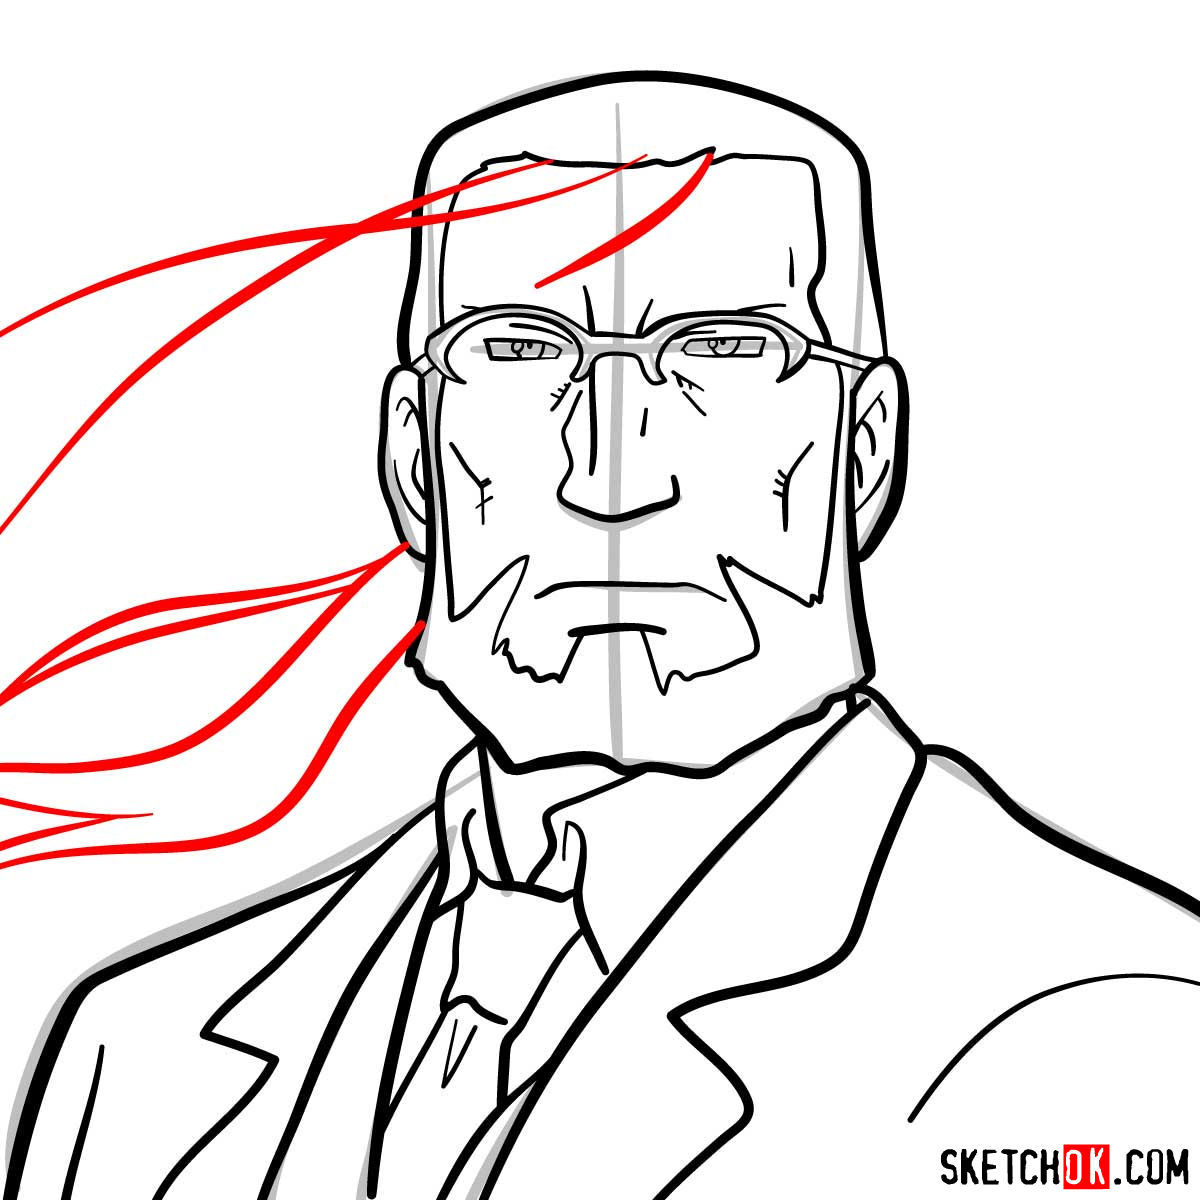 How to draw Van Hohenheim from Fullmetal Alchemist anime - step 10